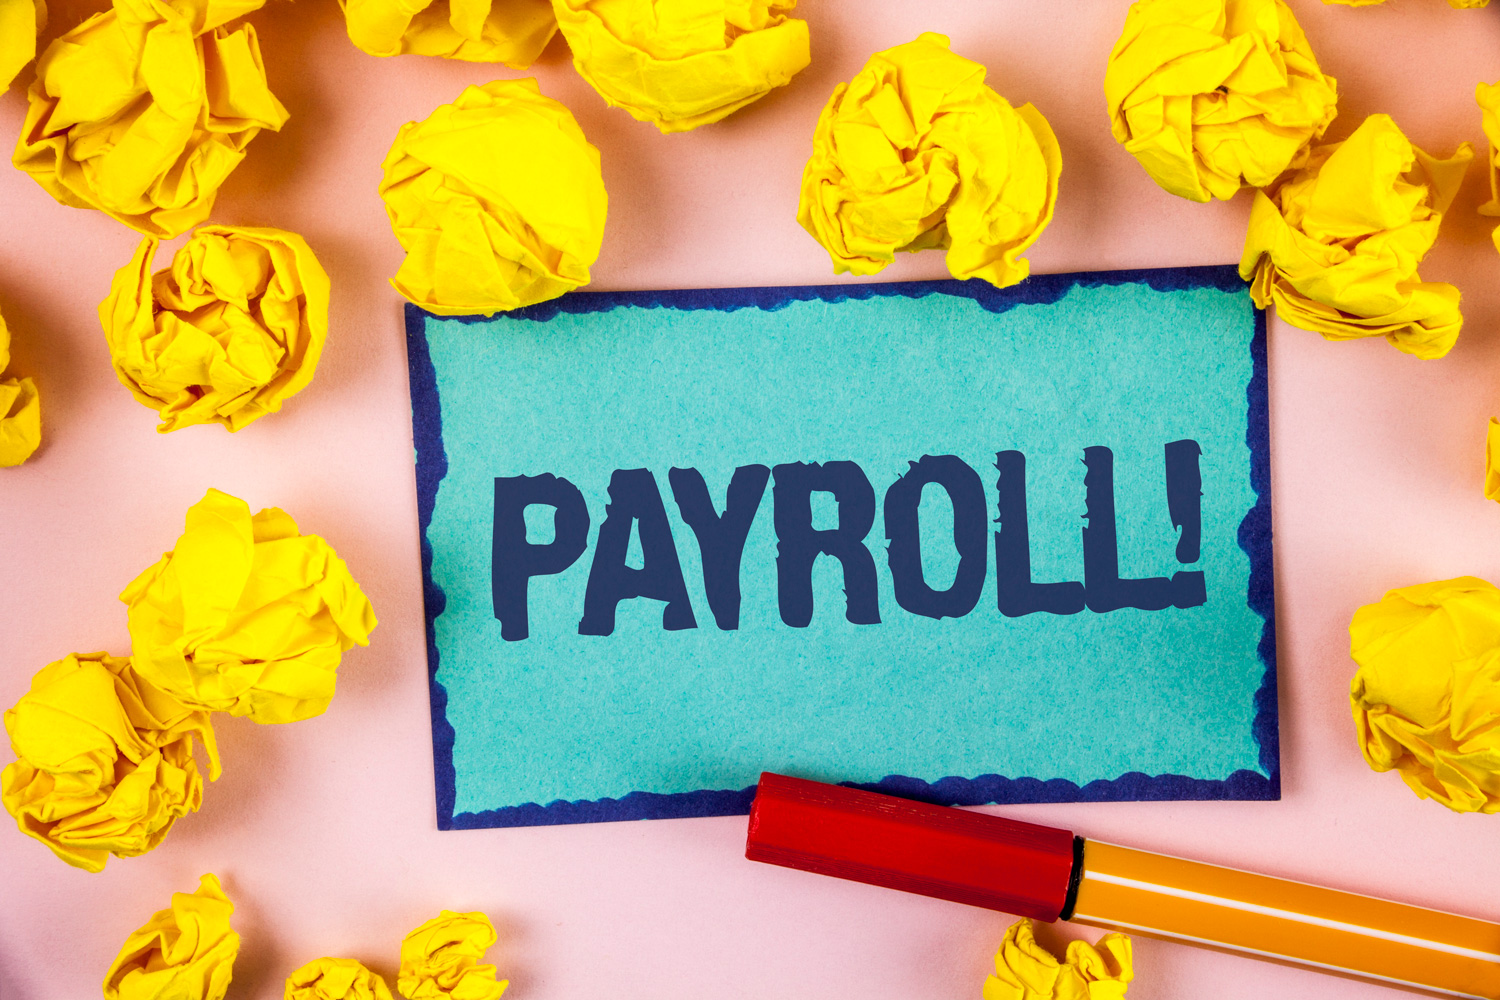 COVID-Related Payroll Tax Deferral Raises Questions